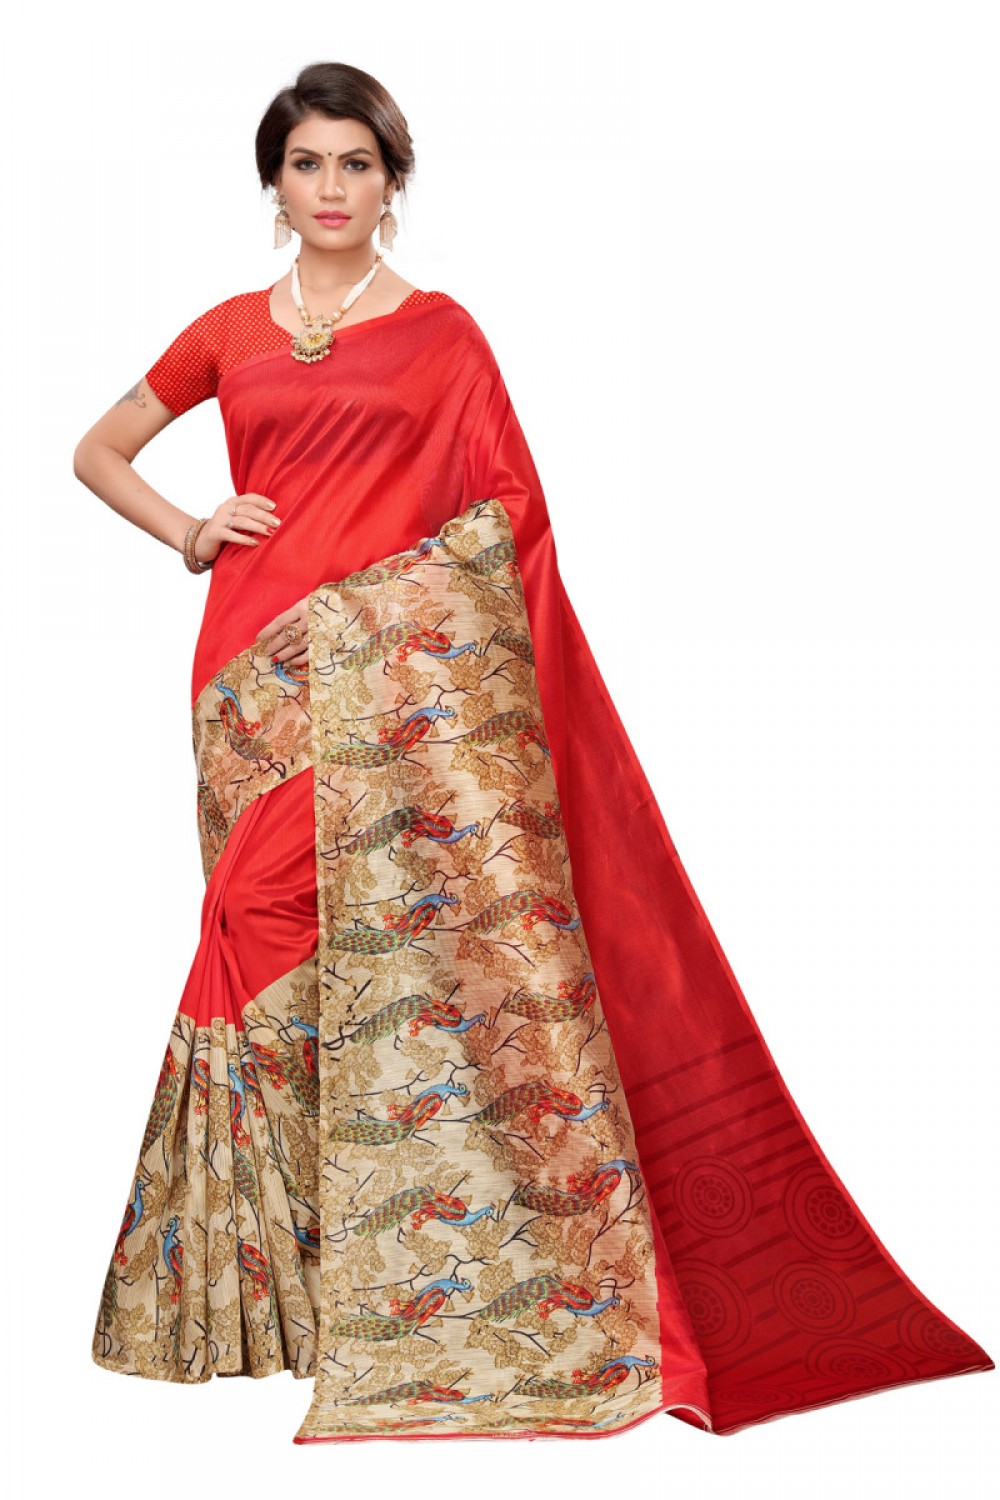 Adoring Red Colour Casual wear Denting saree